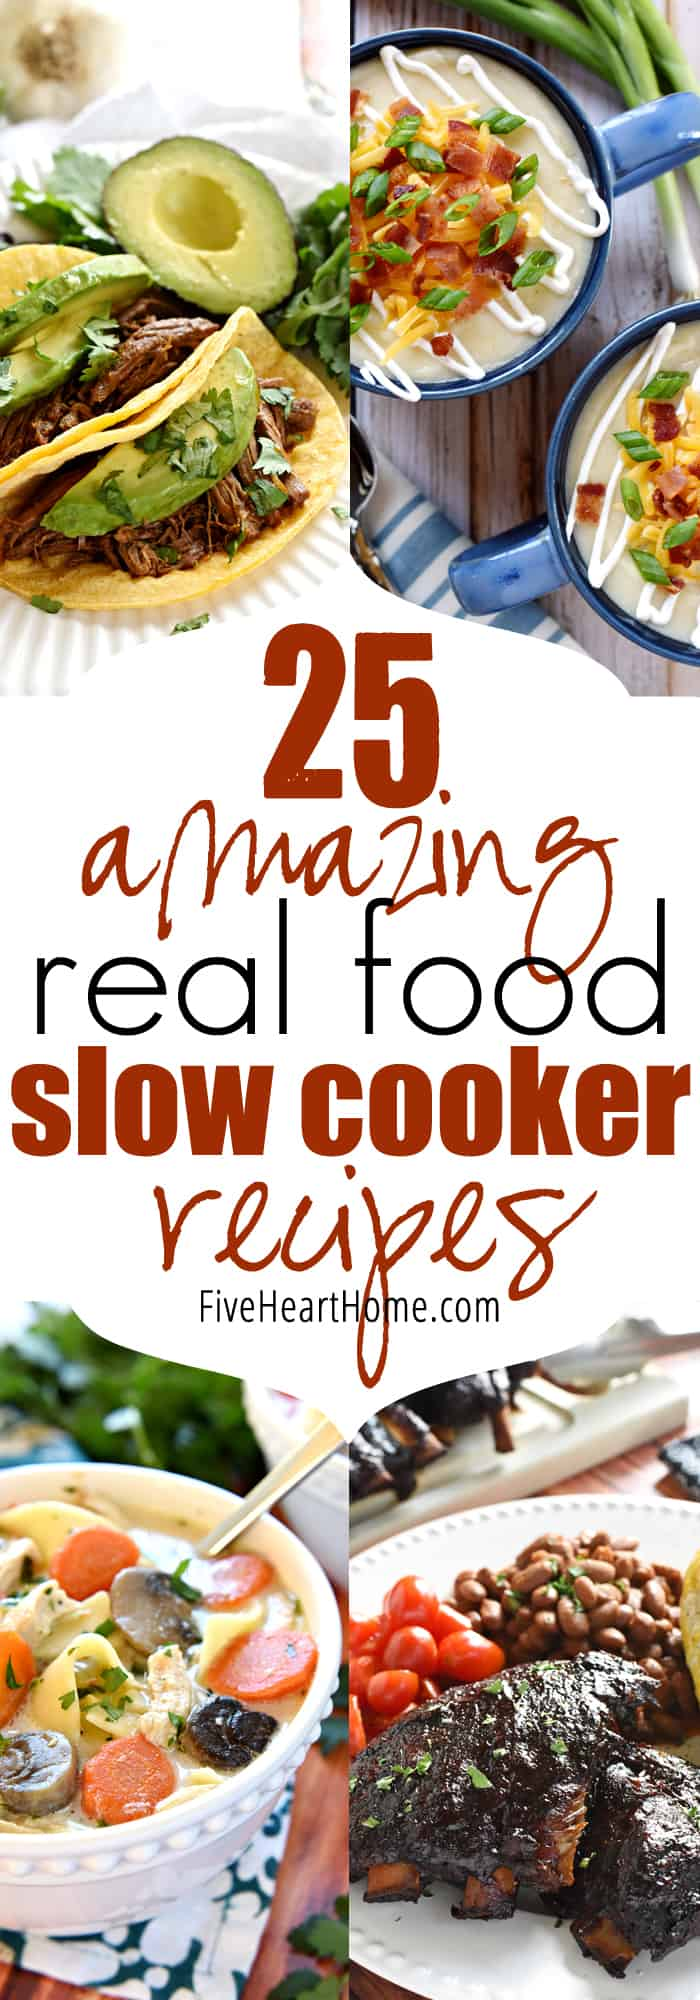 25 Amazing Real Food Slow Cooker Recipes | FiveHeartHome.com